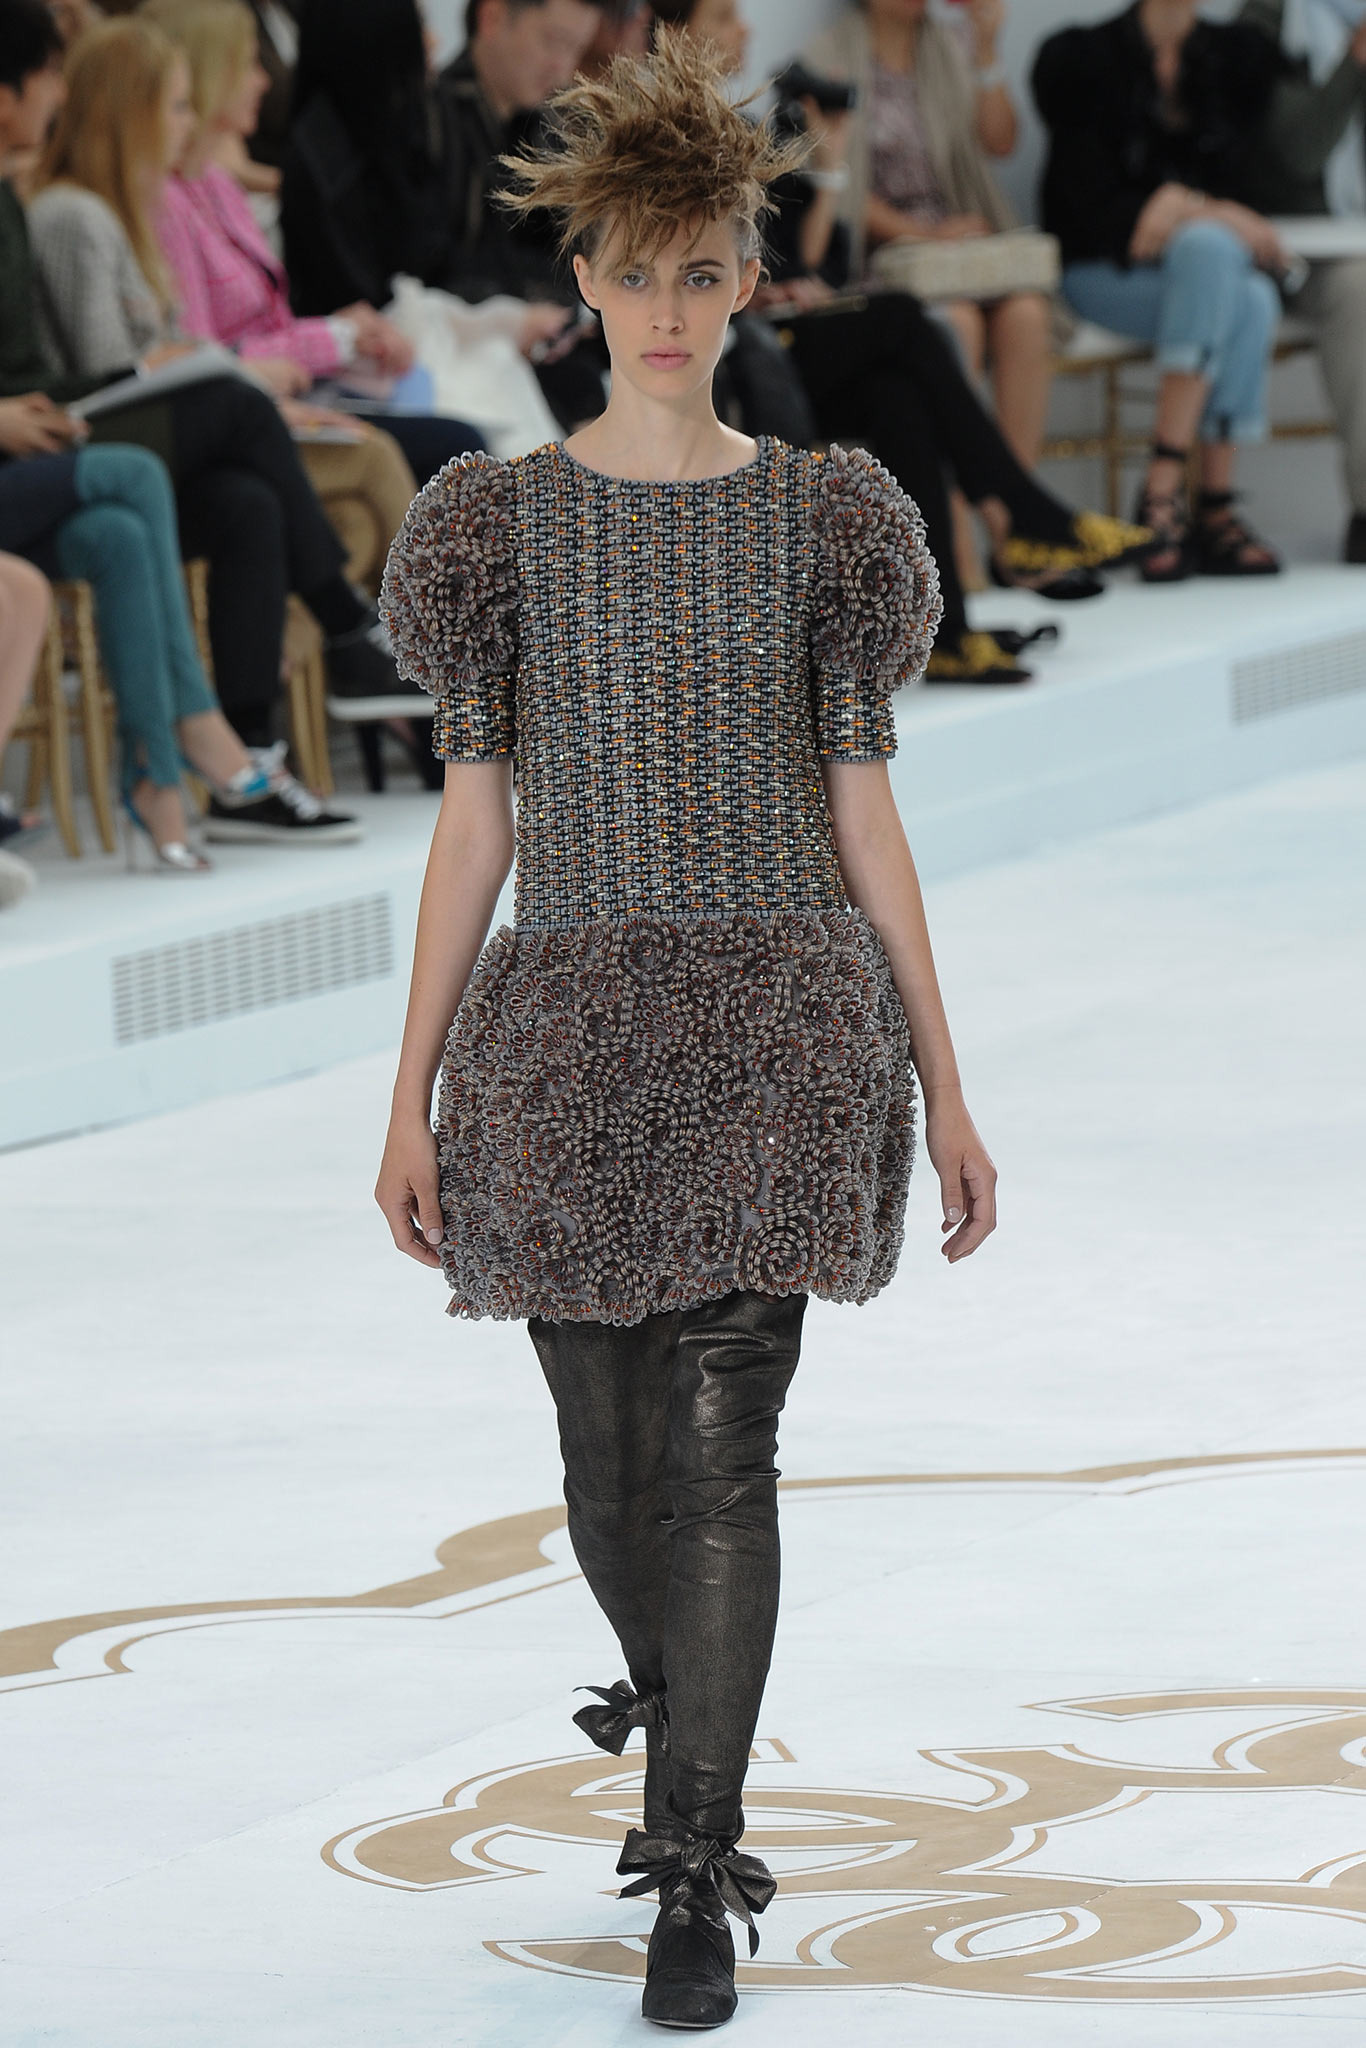 Georgia Hilmer | Chanel Fall 2014 Couture (Photography: Kim Weston Arnold / Indigitalimages.com via Style.com)